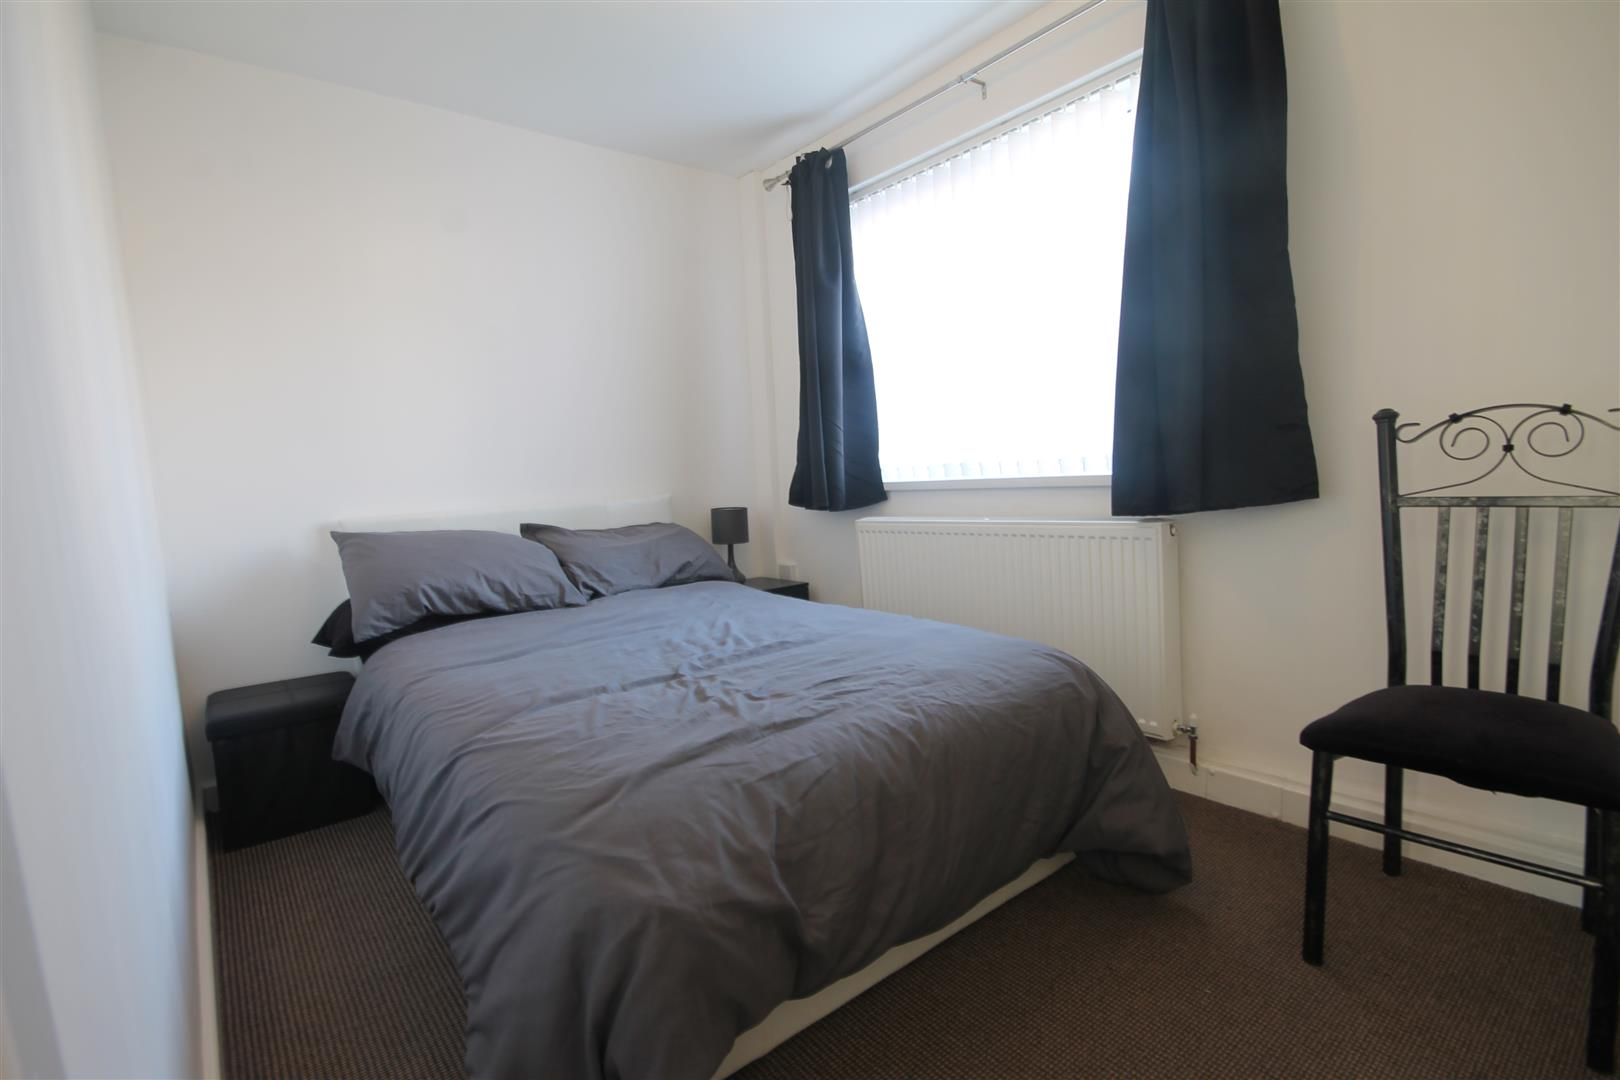 Waltham Place Newcastle Upon Tyne, 4 Bedrooms  House ,Sold (STC)